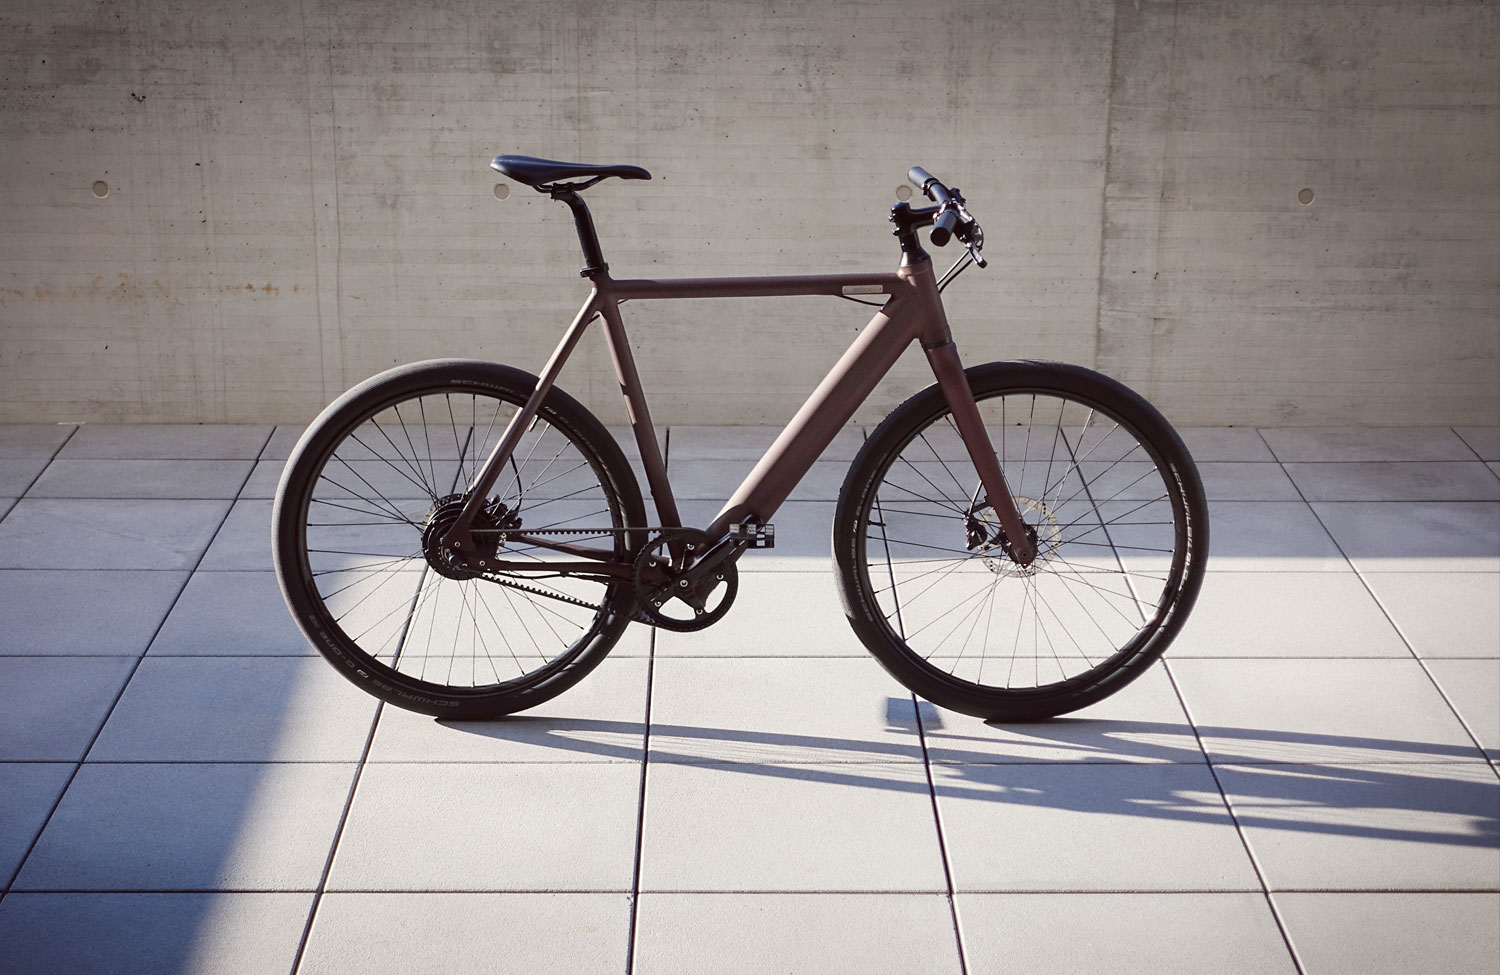 Fette Bereifung, puristischer Look: Das E-Bike Coboc ONE Brooklyn Fat im Test